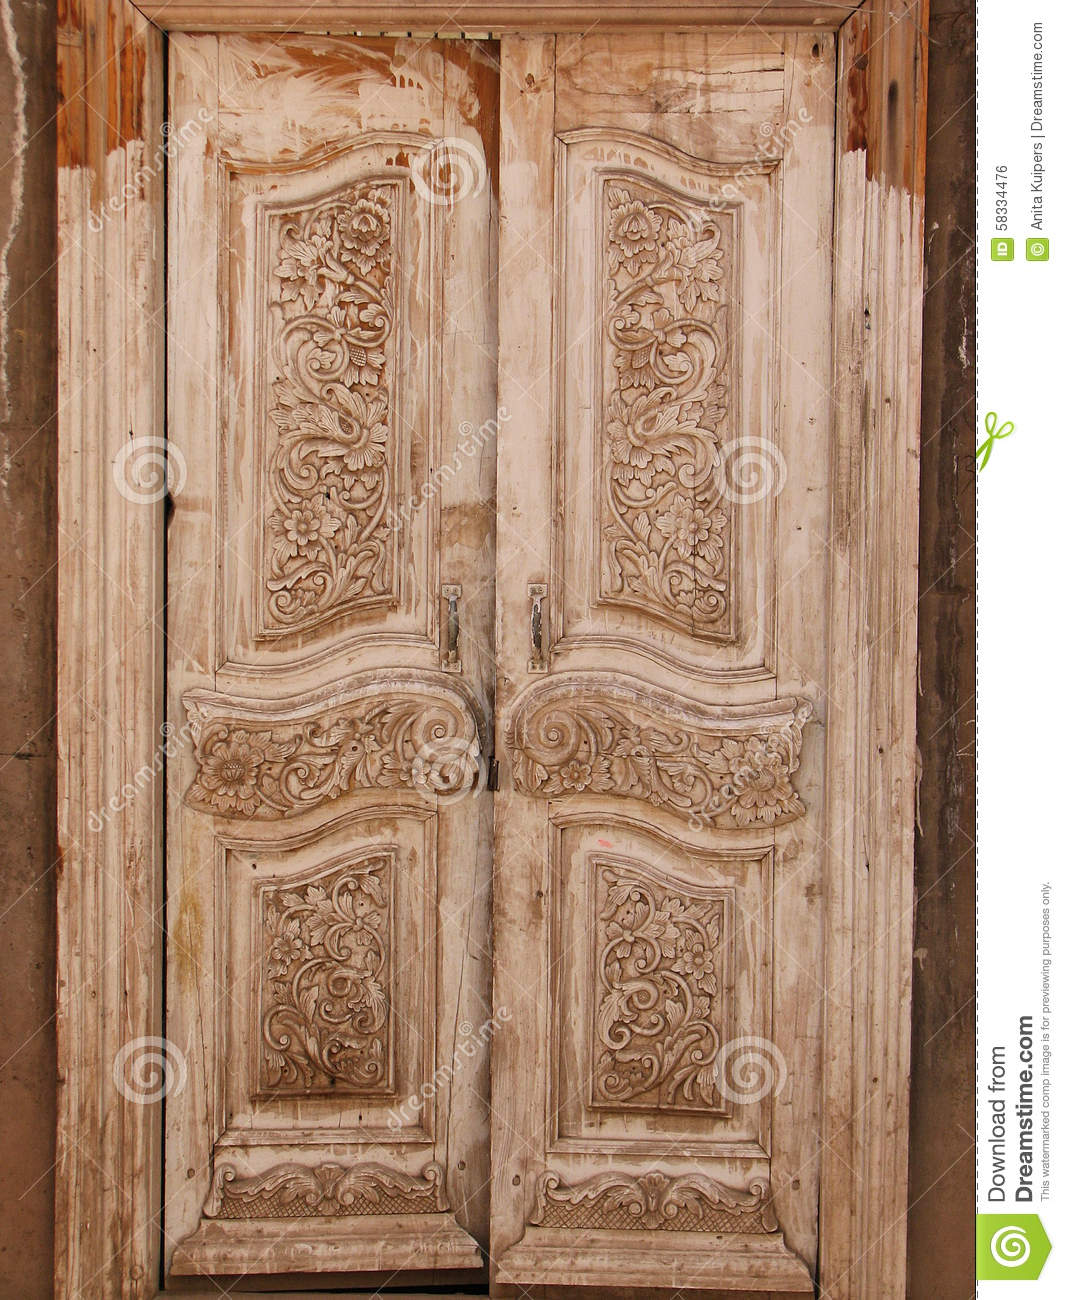 Carved doors stock photography 37158242 for Beautiful wooden doors picture collection